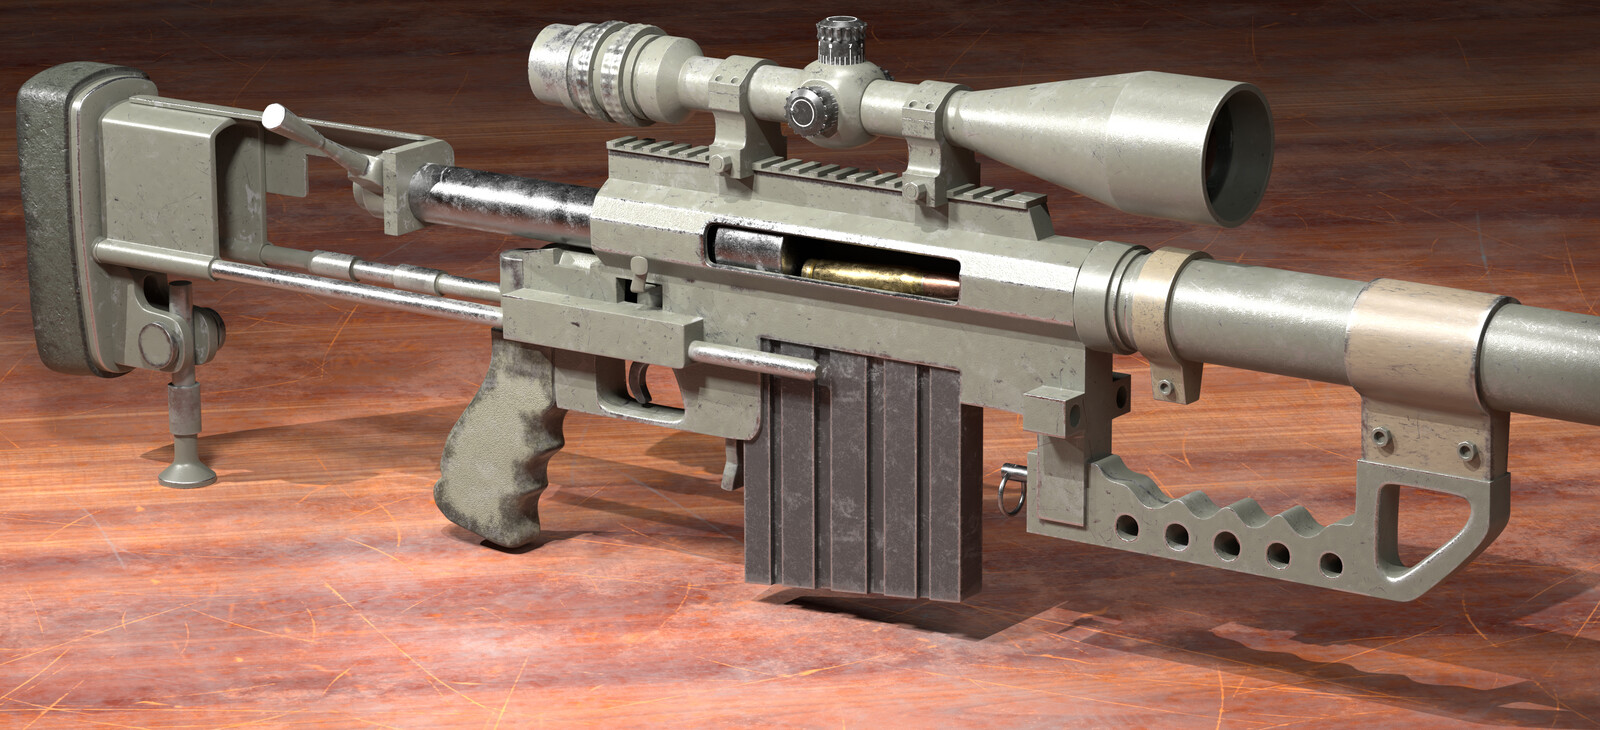 Cheytac m200 sniper rifle - renders part 1